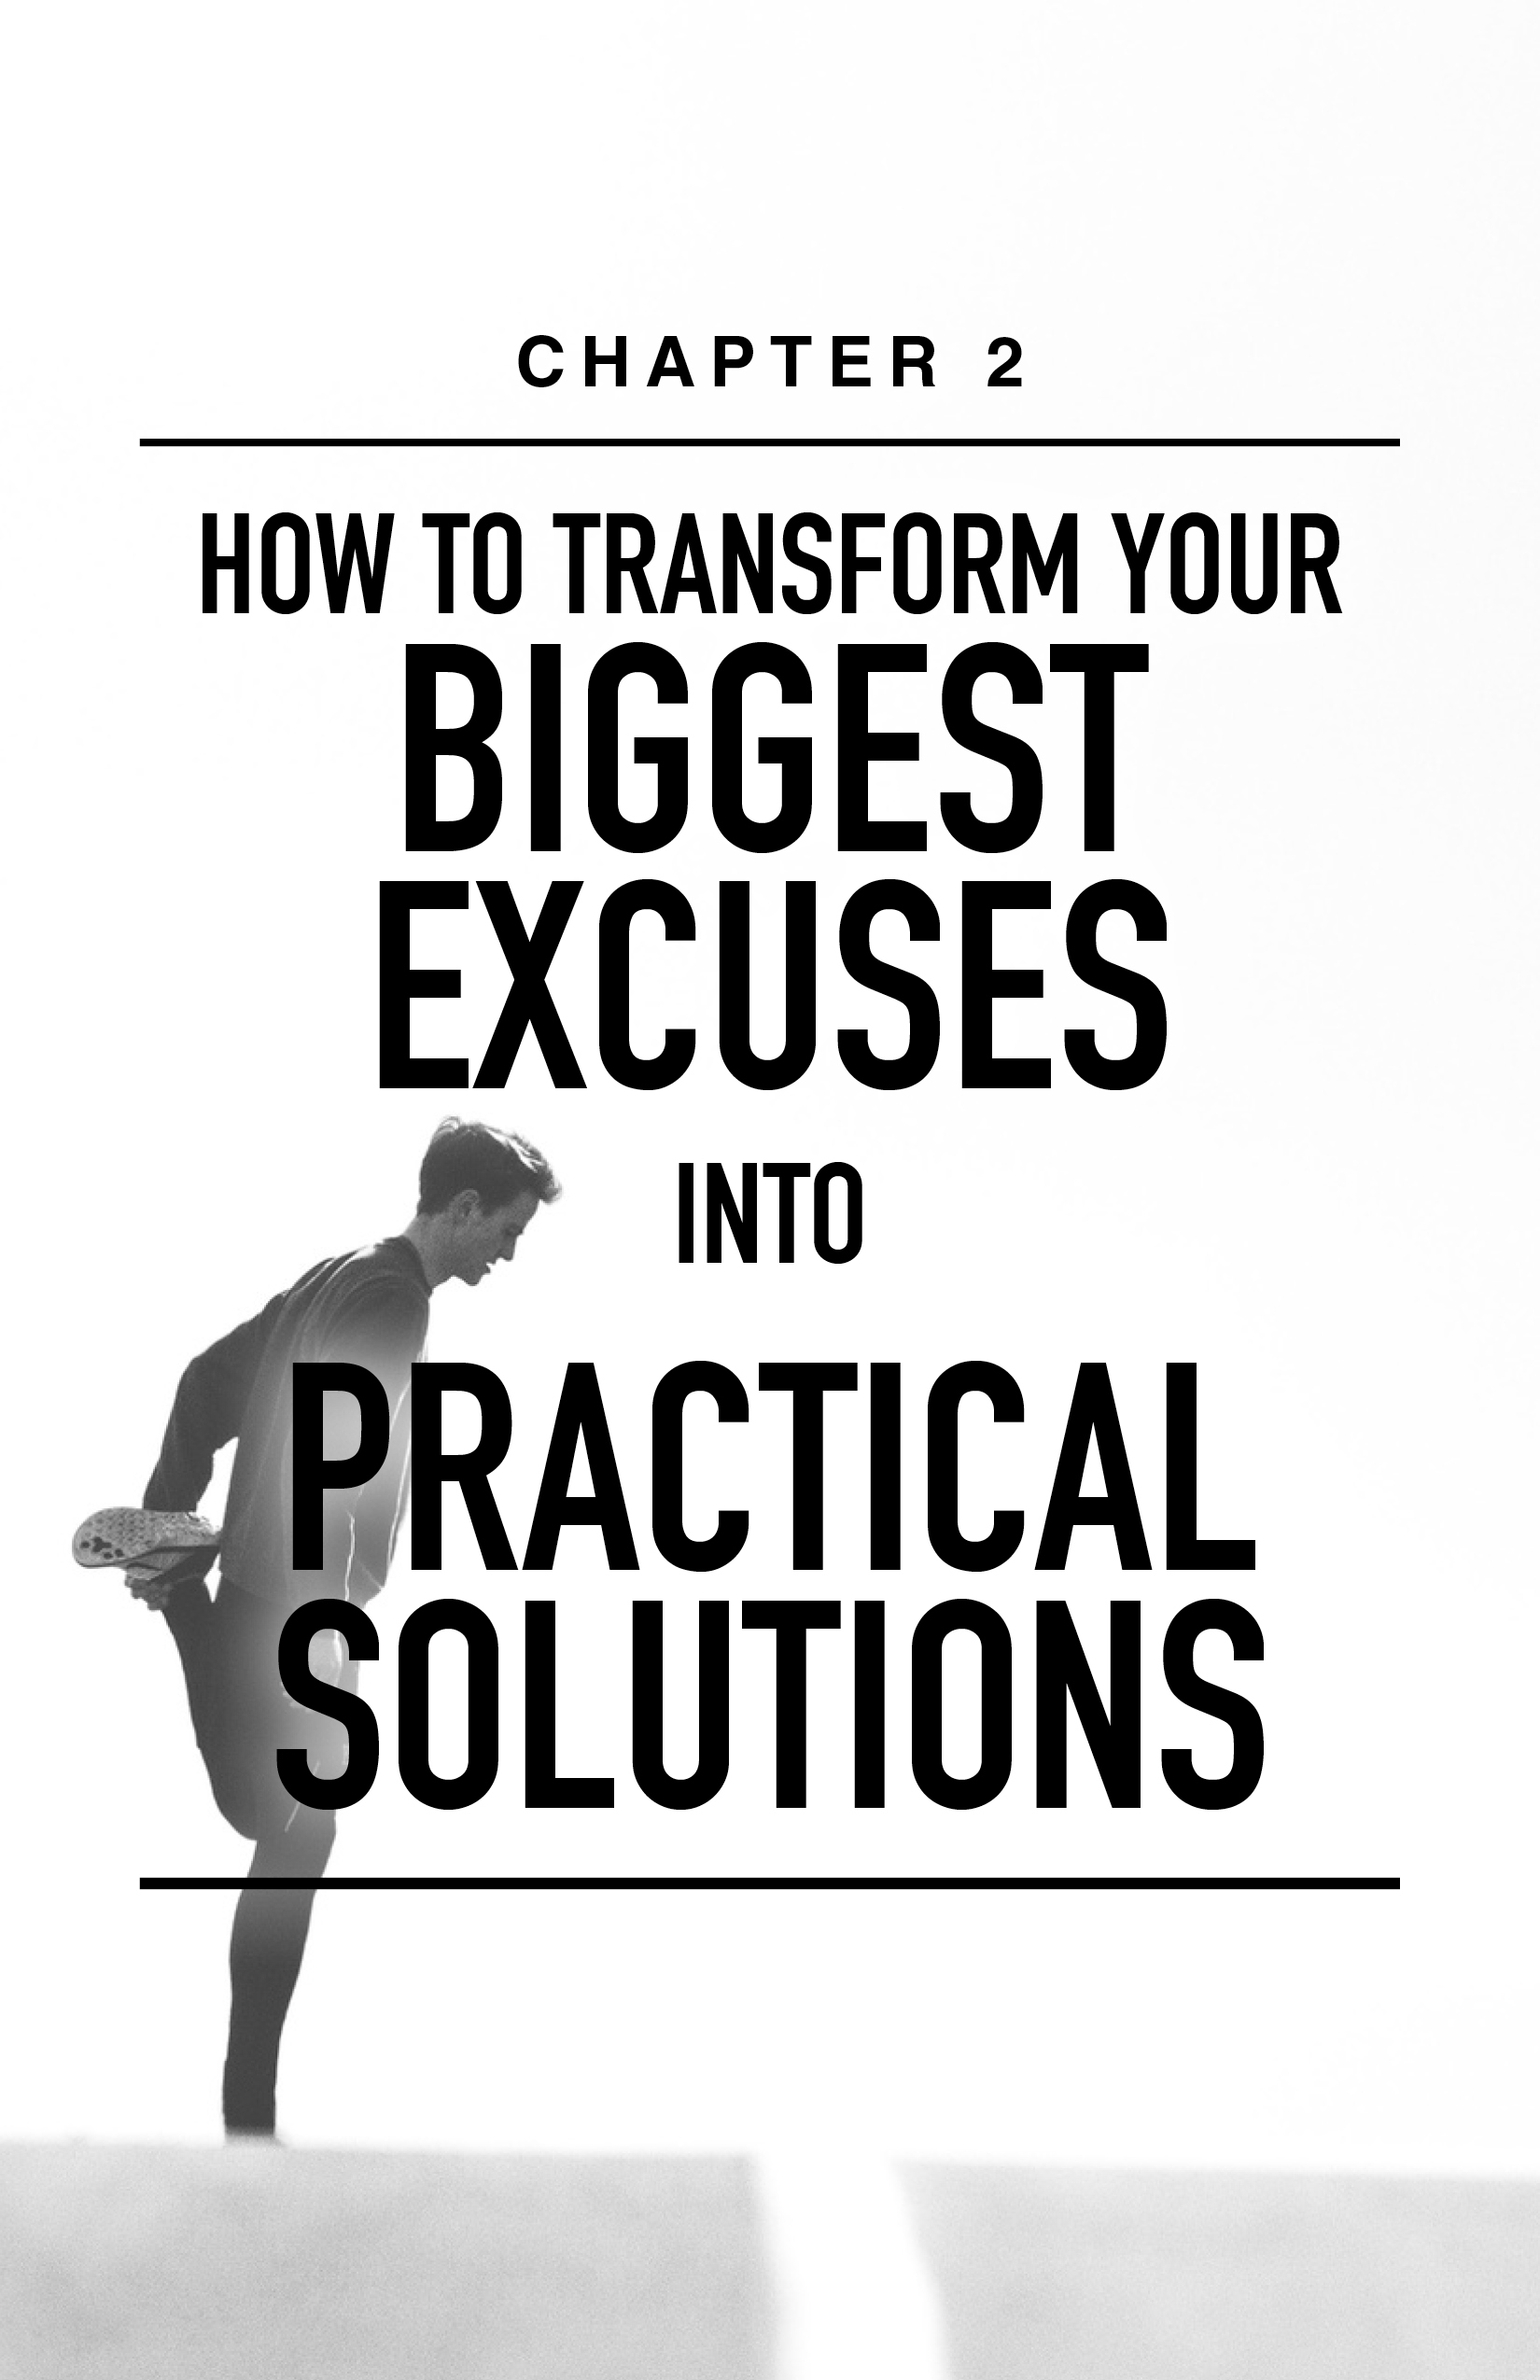 CH 2: How To Transform Your Biggest Excuses Into Practical Solutions